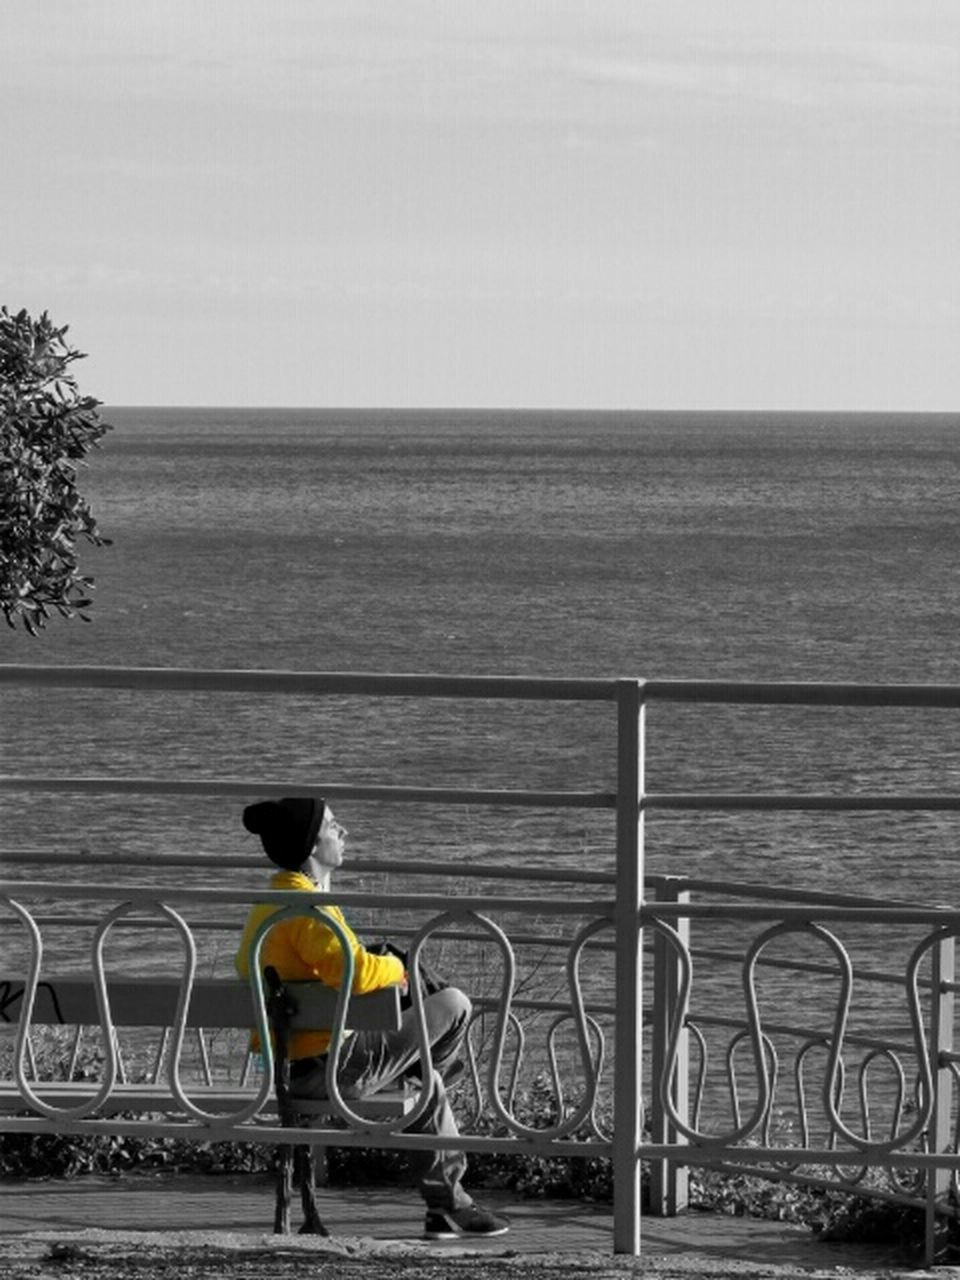 horizon over water, sea, water, bicycle, men, transportation, beach, tranquil scene, leisure activity, relaxation, tranquility, scenics, mode of transport, cycling, vacations, shore, seascape, outdoors, beauty in nature, day, getting away from it all, tourism, cycle